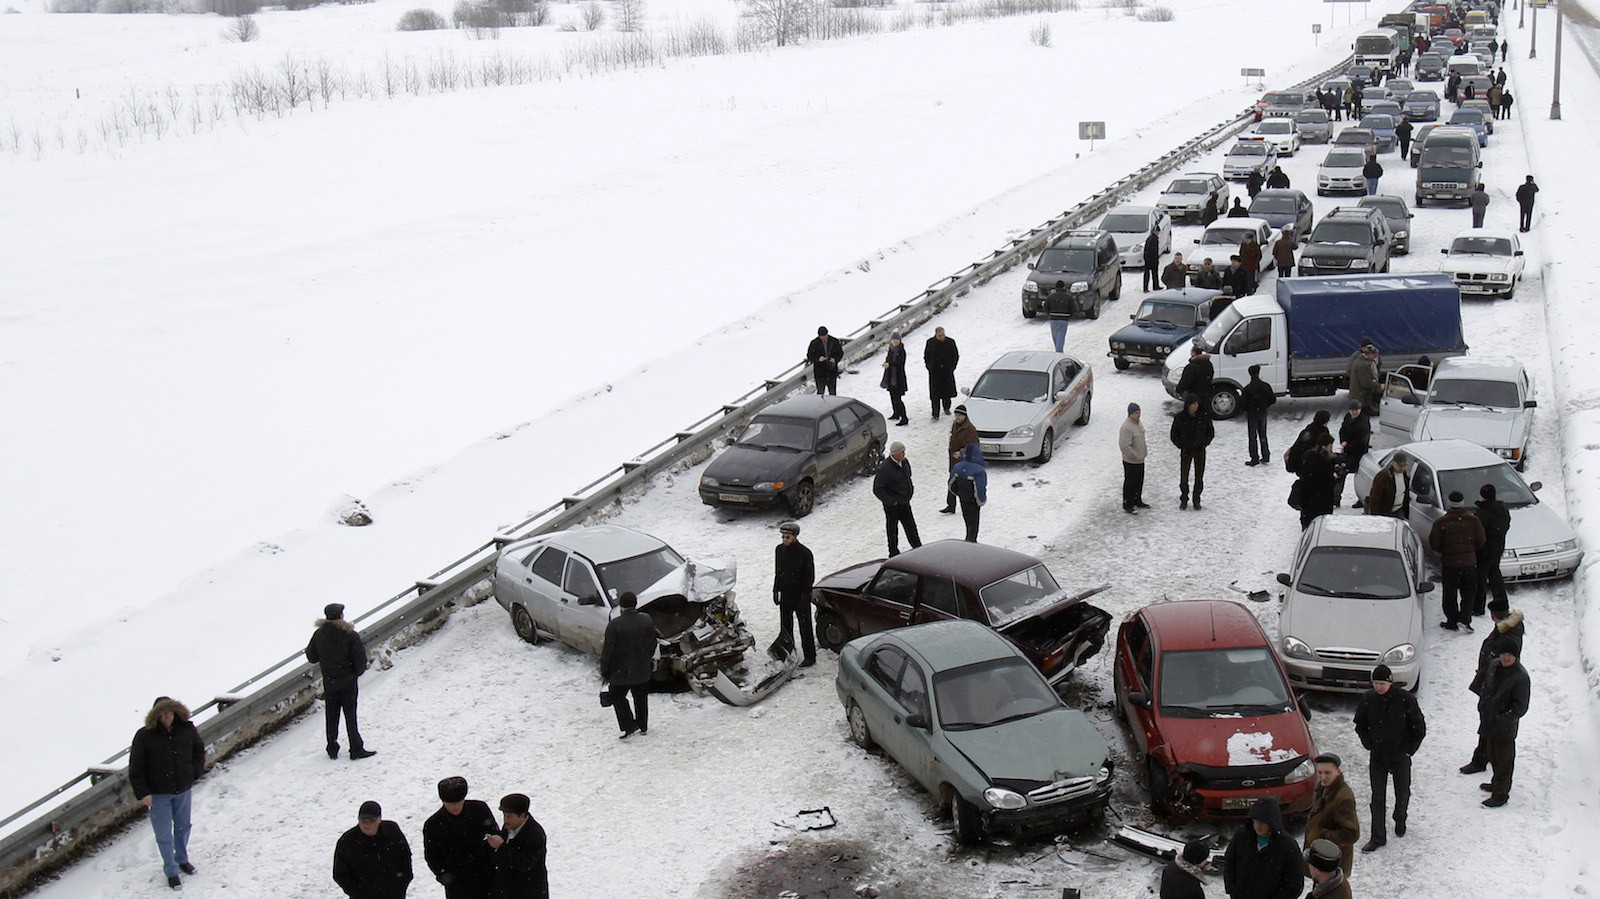 People stand at the site of a car accident which caused a traffic jam on a road from the airport to the city of Kazan, some 800 kms (496 miles) east of Moscow, March 11, 2010.